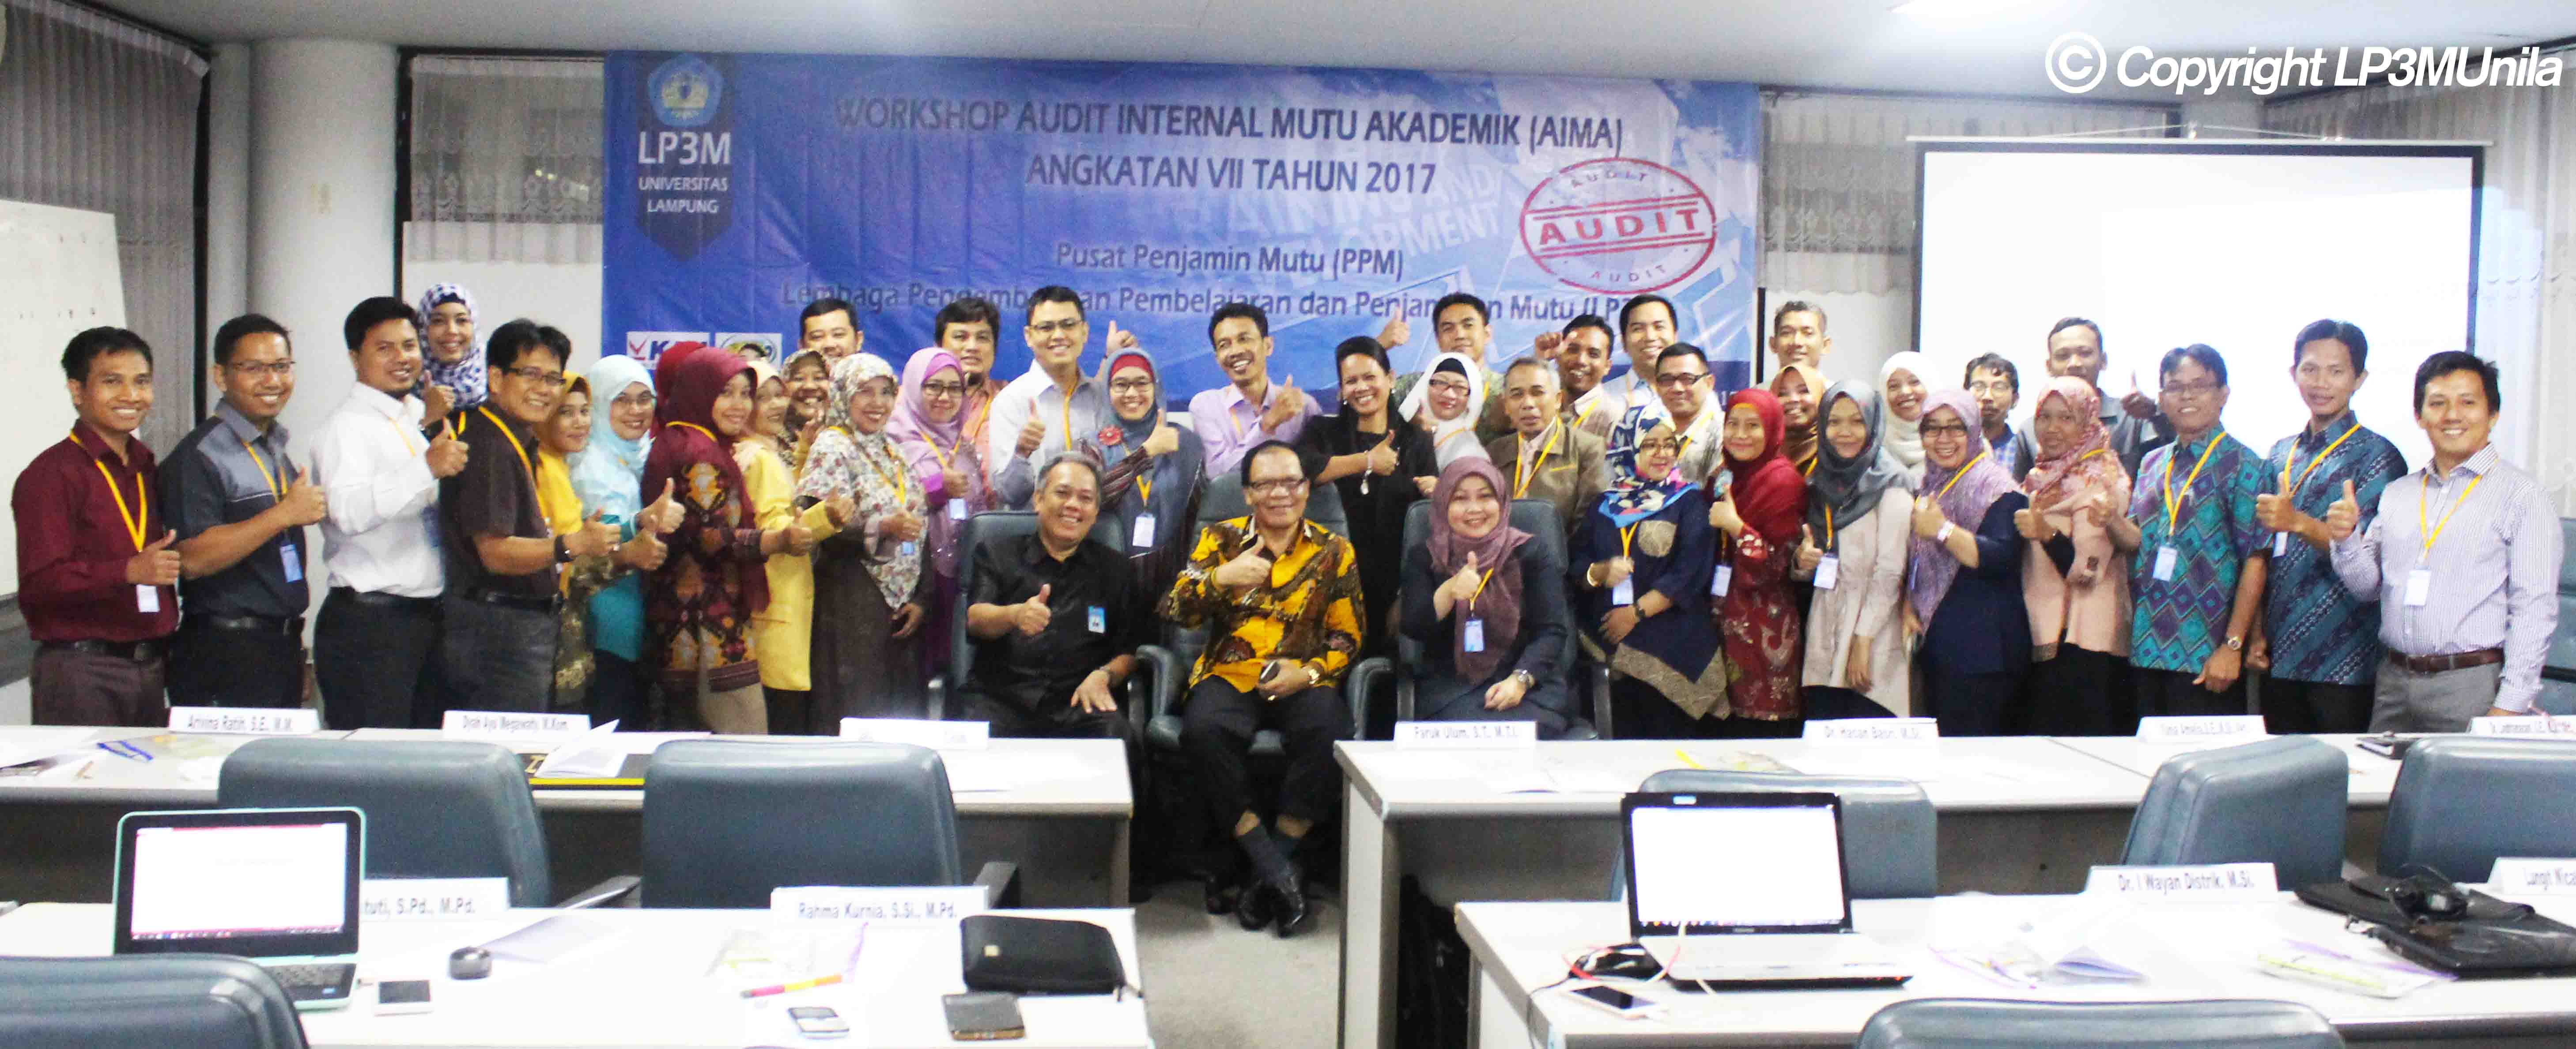 Audit Internal Mutu Akademik 2017